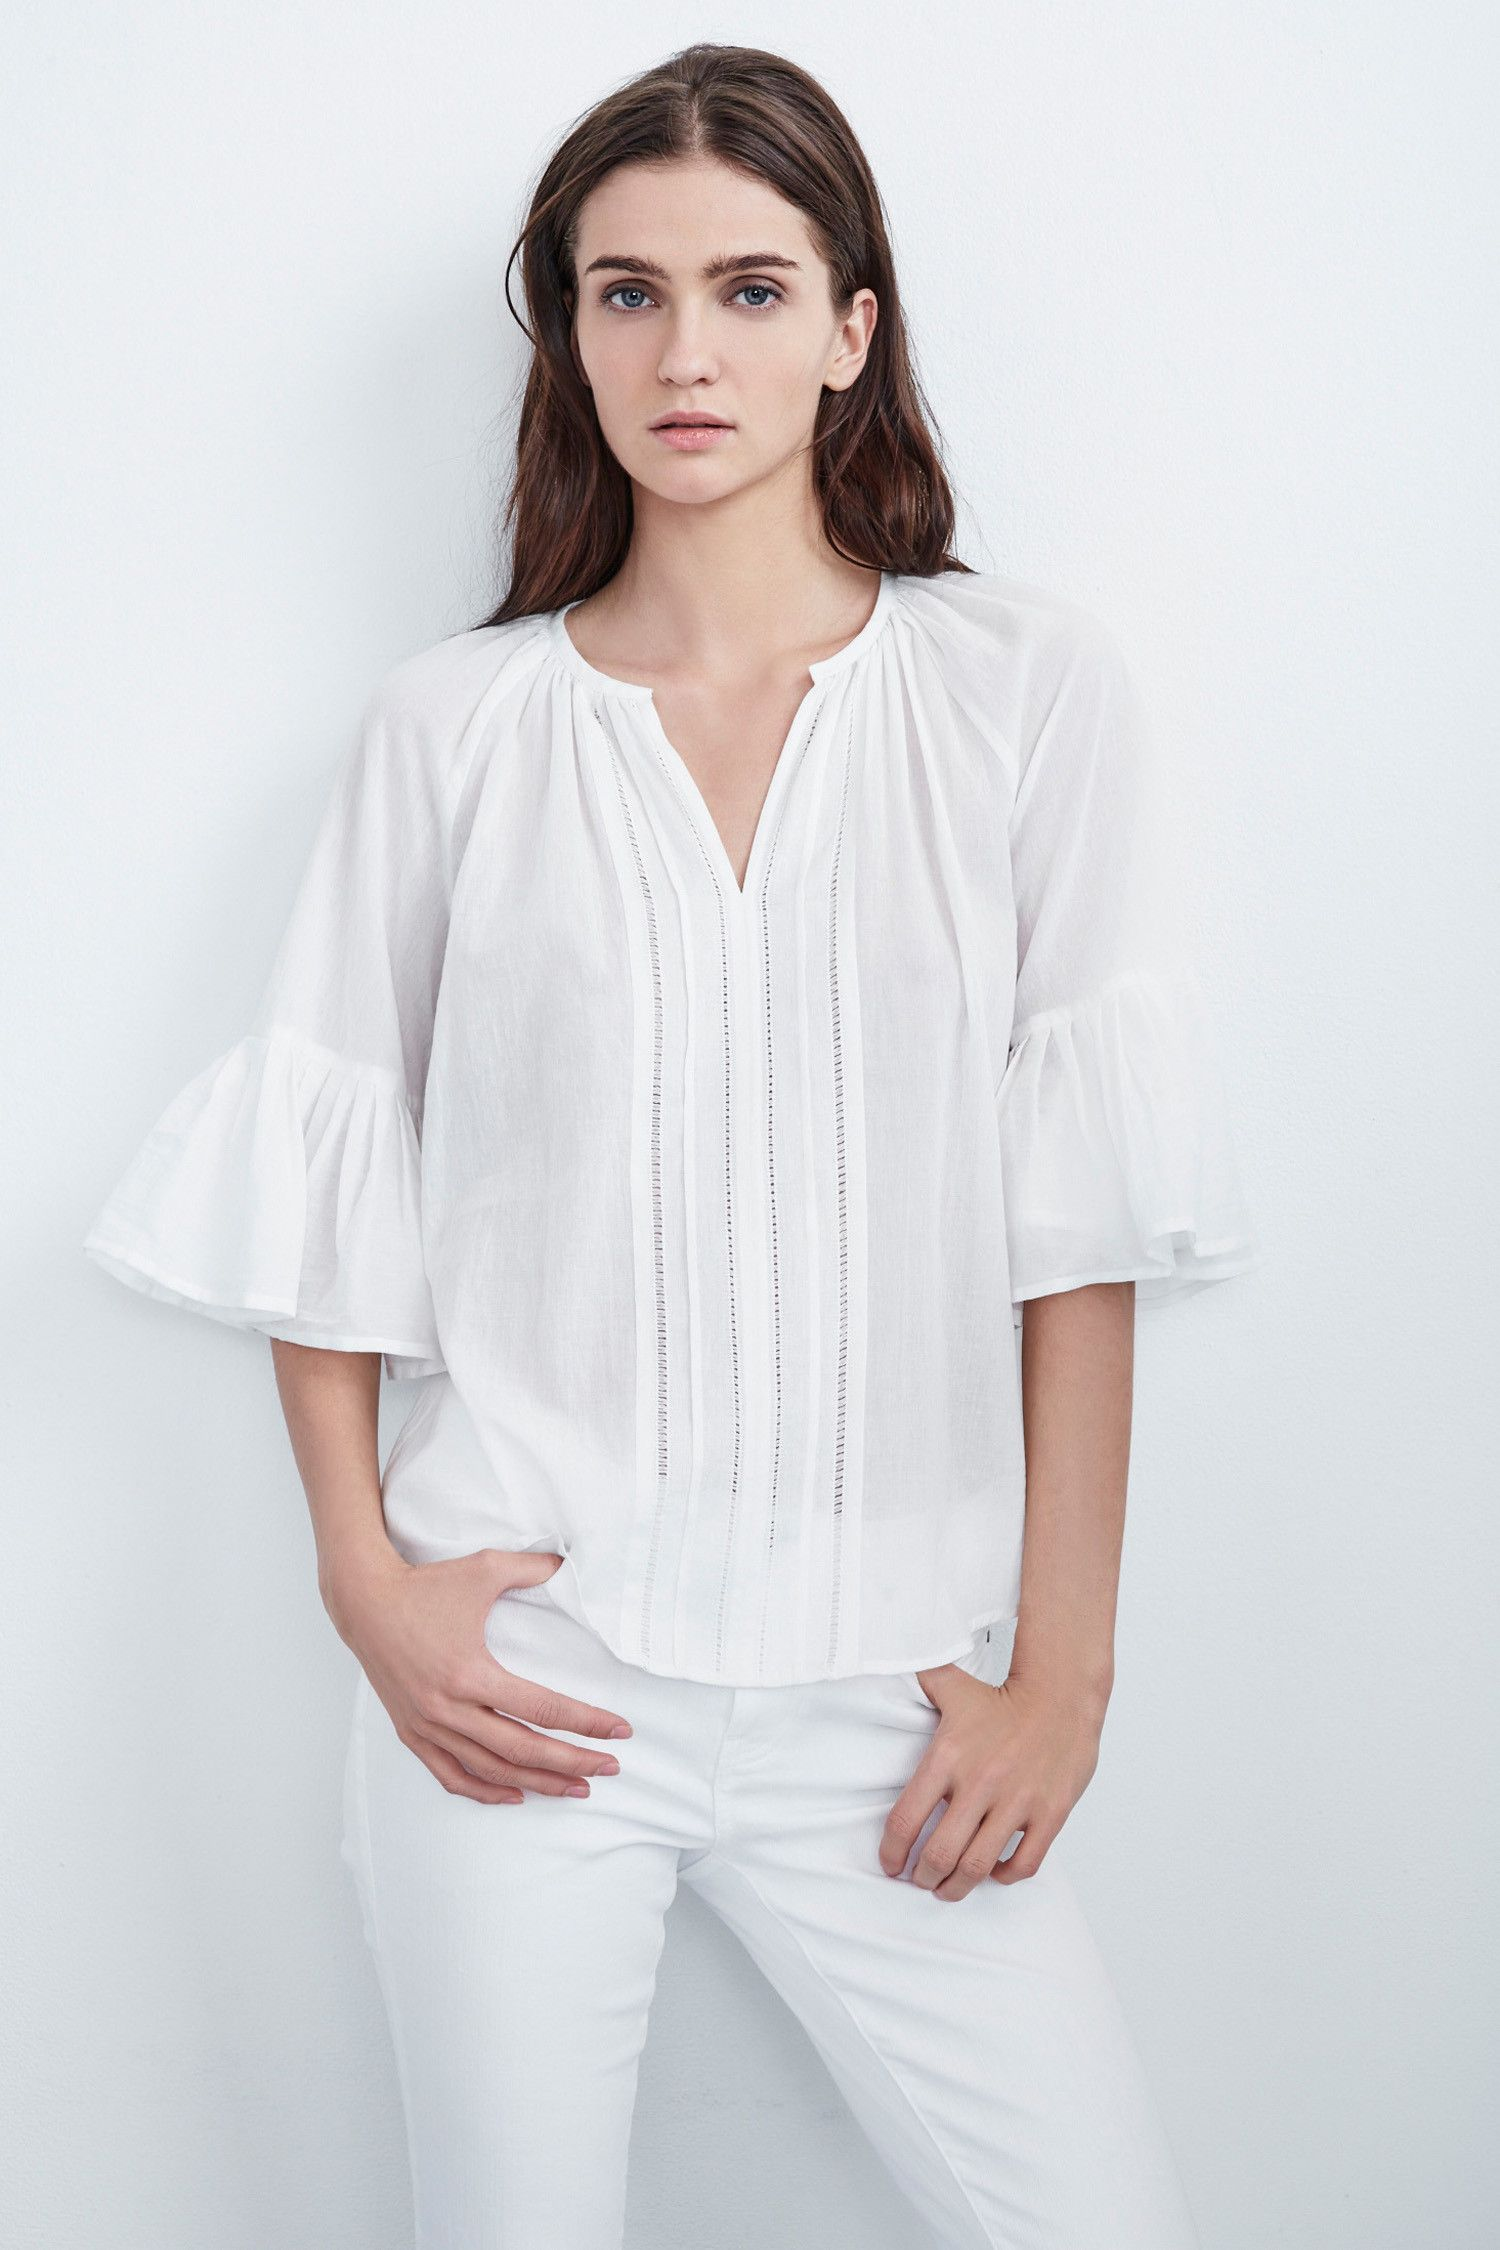 CELINA SUMMER VOILE PLEATED TOP IN CREAM (With images ...